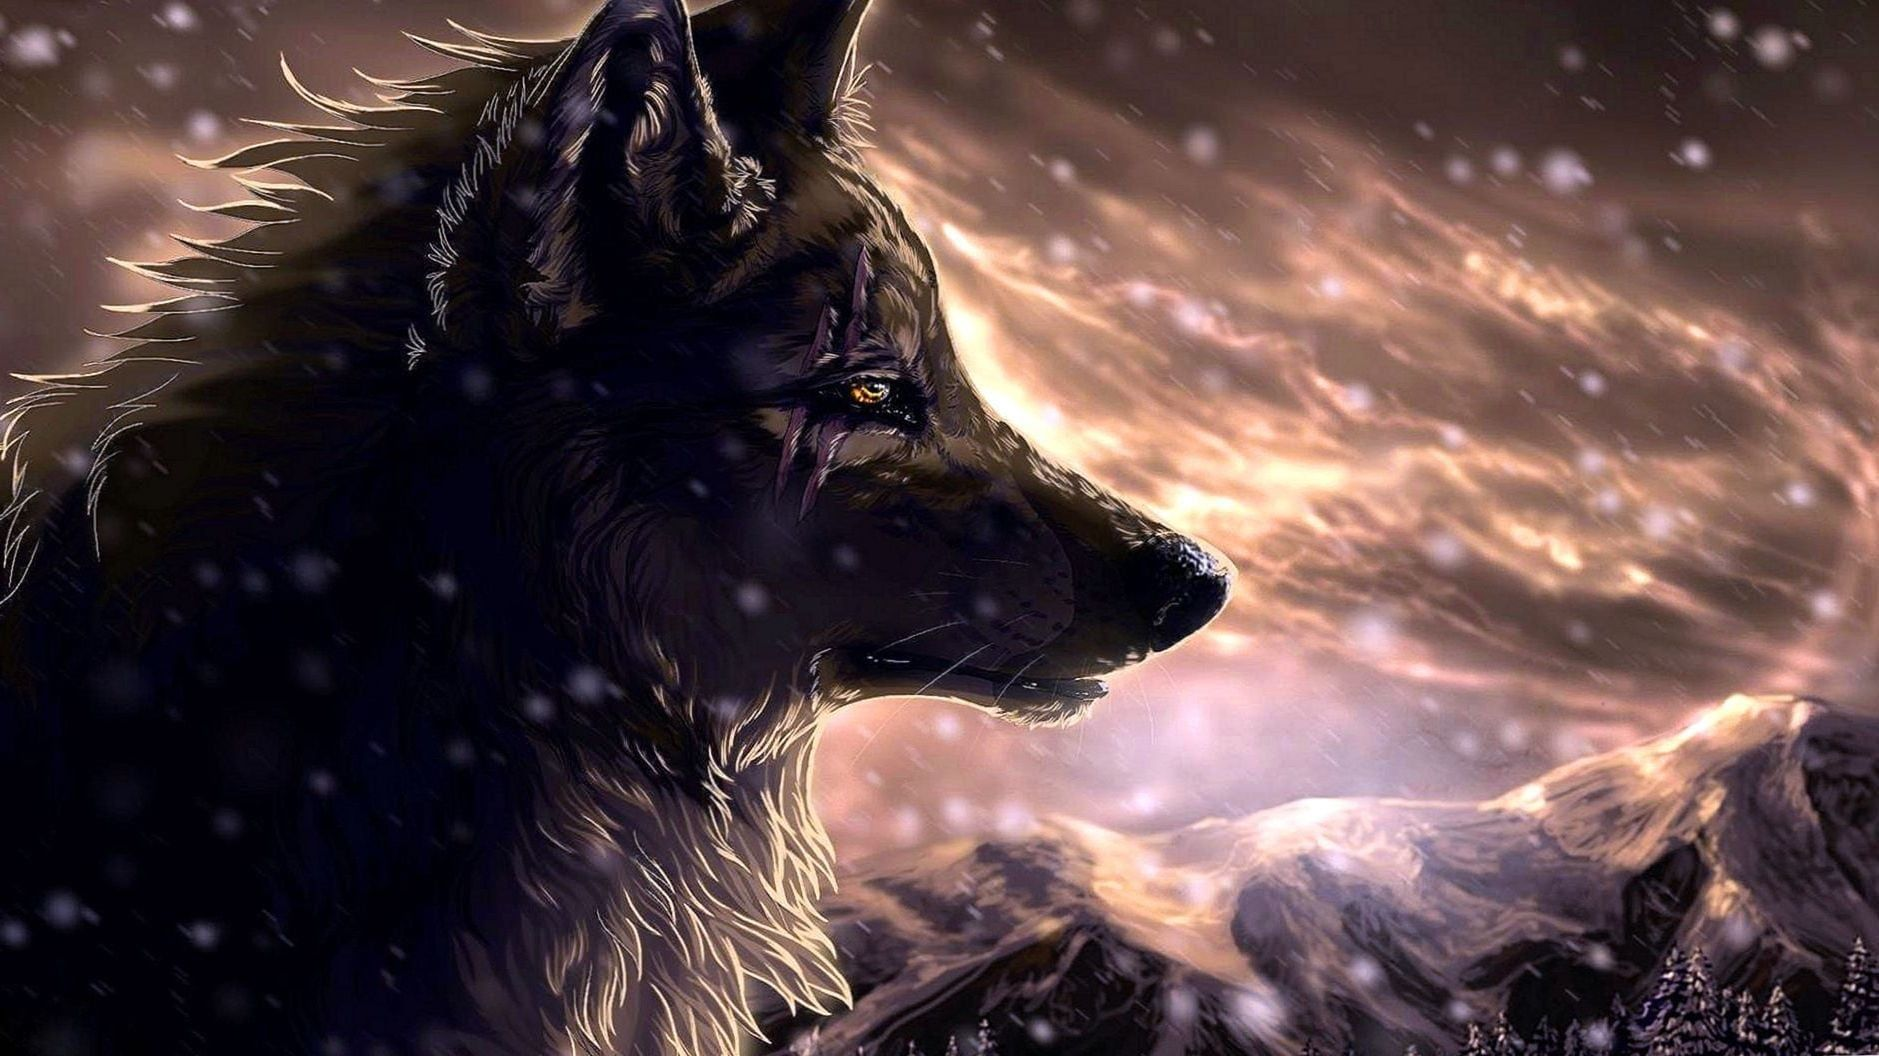 Best Wallpapers Of Wolves Best Wallpapers Of Wolves Wolf Wallpaper Wolf Background Anime Wolf